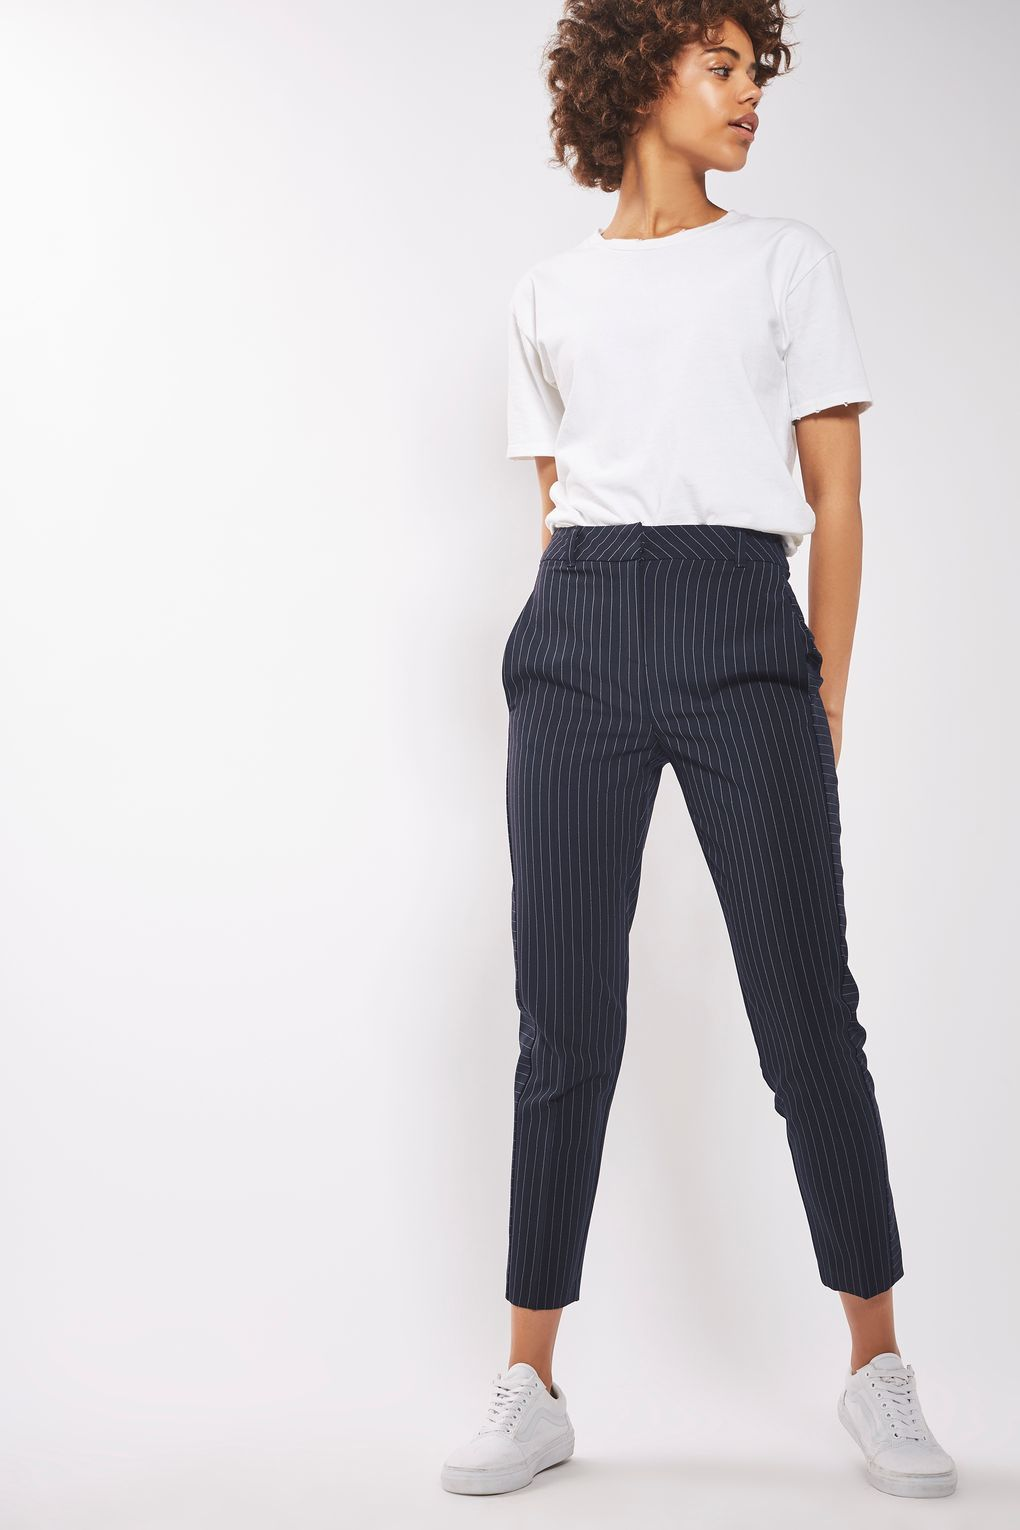 690795c93a navy Pinstripe Cigarette Trousers - New In Fashion - New In - Topshop Cigarette  Trousers Outfit